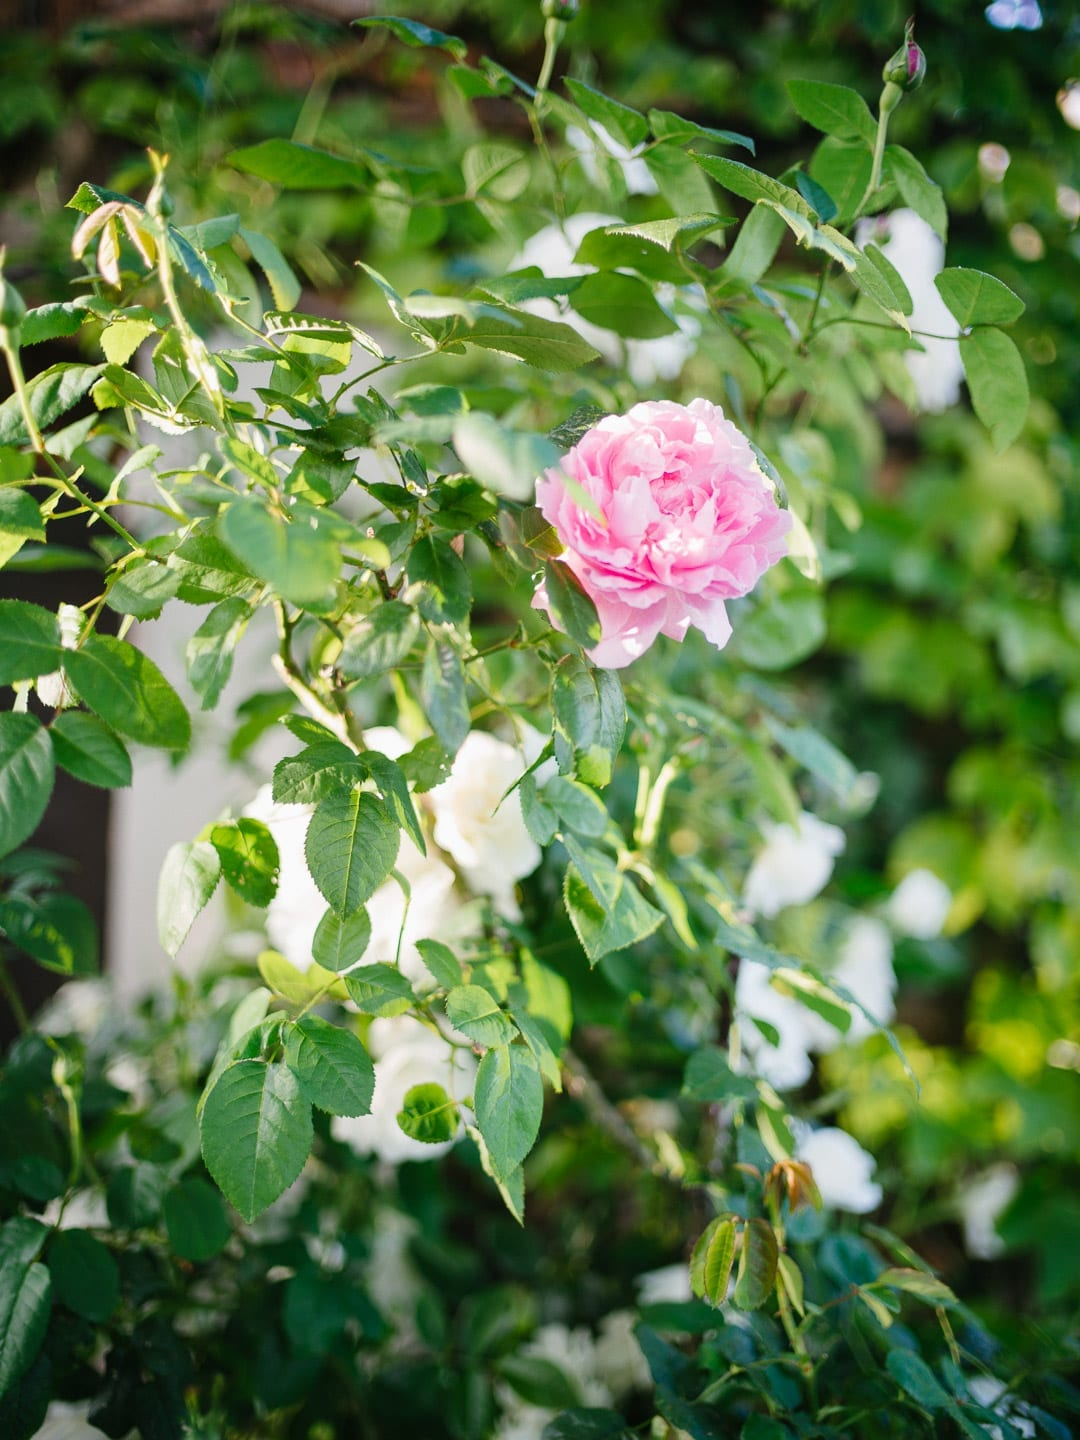 A single pink rose in a French garden - First Glimpse of France